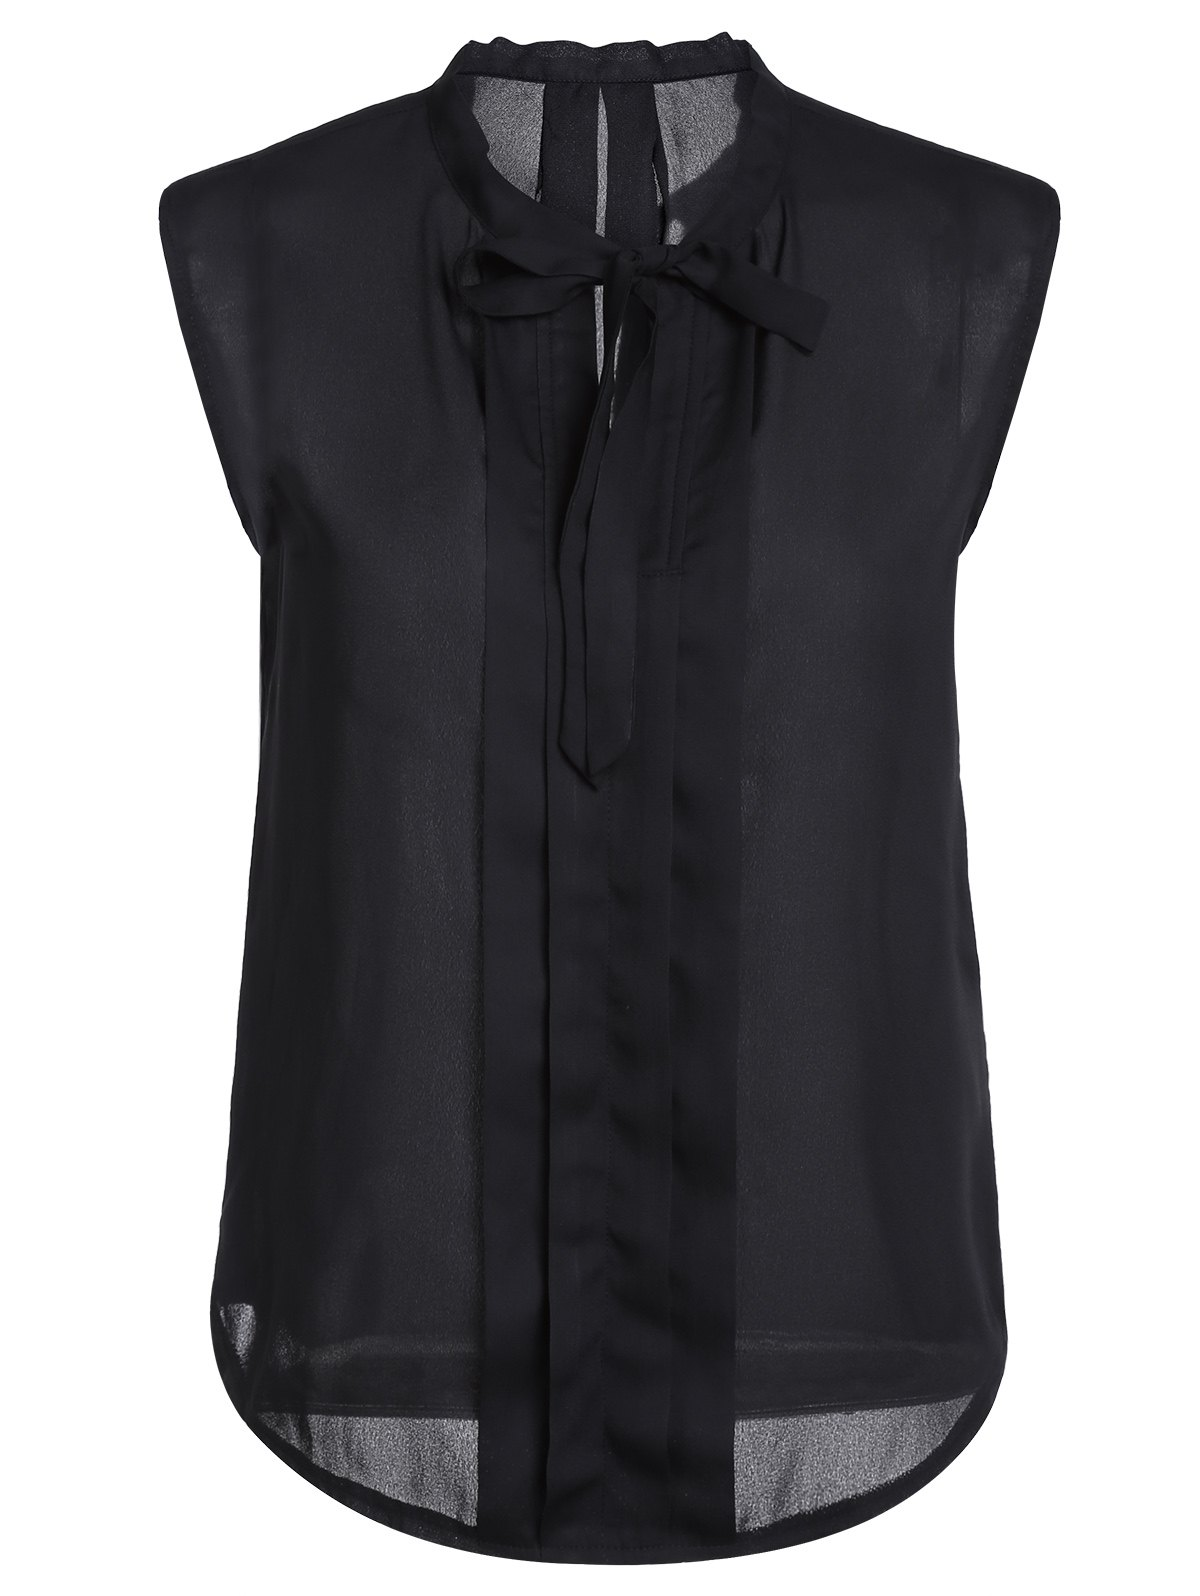 Stylish Women's Bow Tie Collar Solid Color Sleeveless Blouse - BLACK L